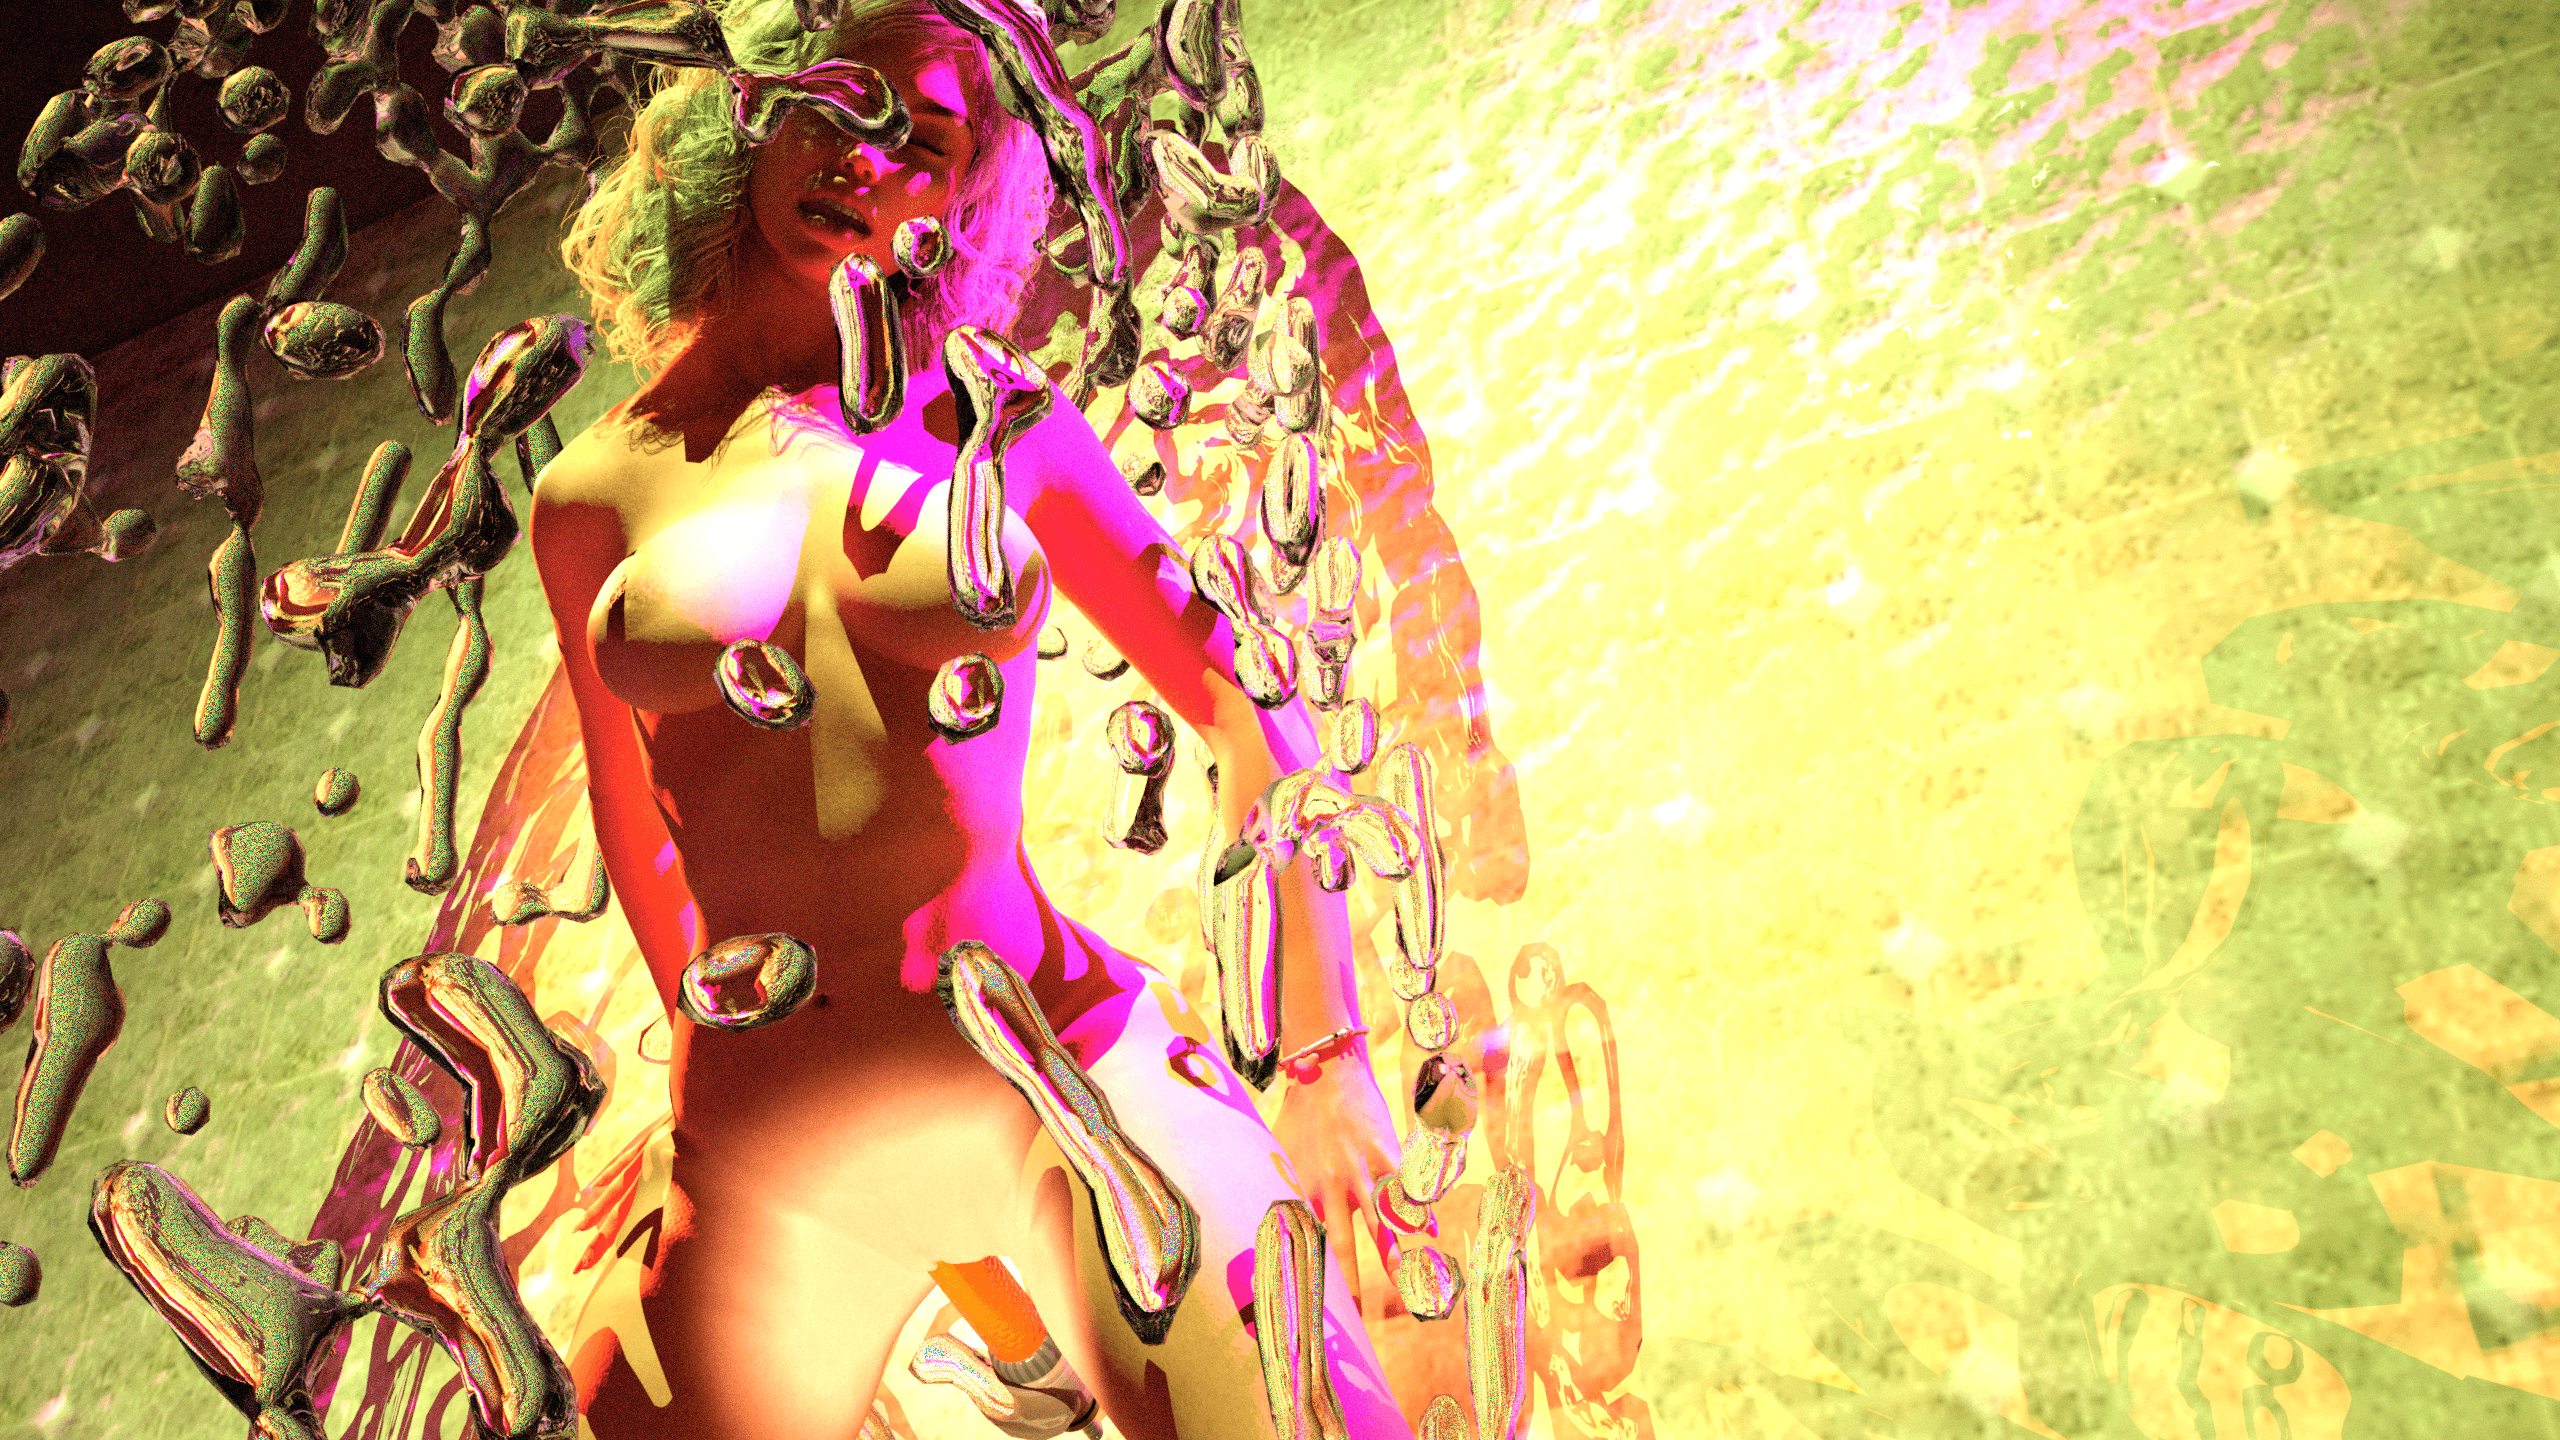 Glory-Hole-Contest-20-sister-in-the-shower-Genxmwe.png